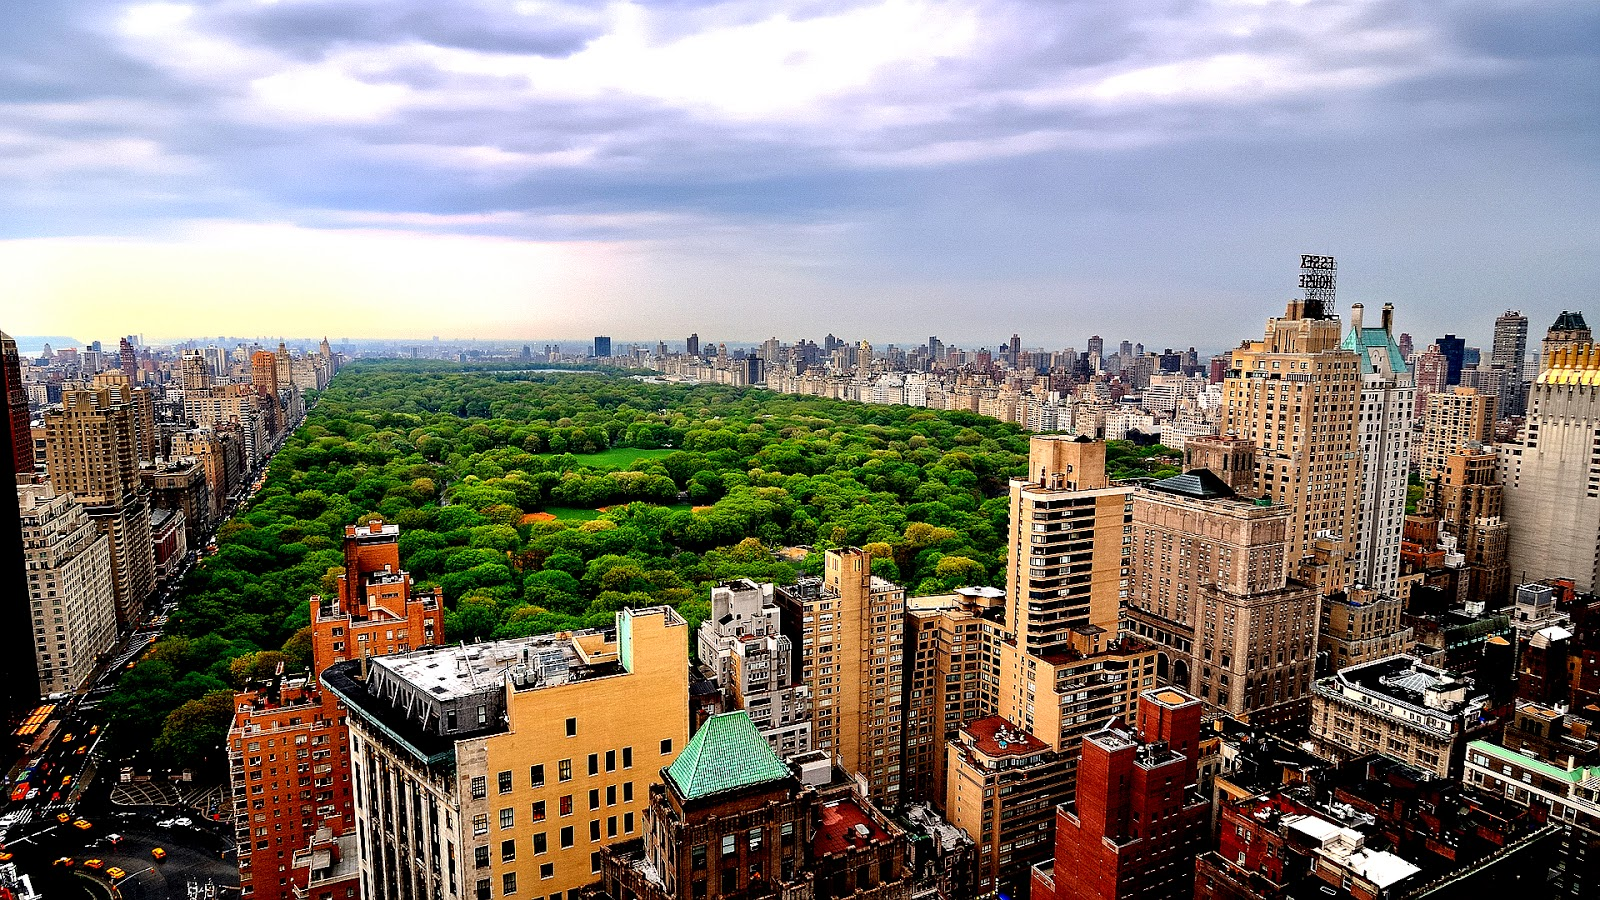 new york hd wallpapers new york hd wallpapers check out the cool